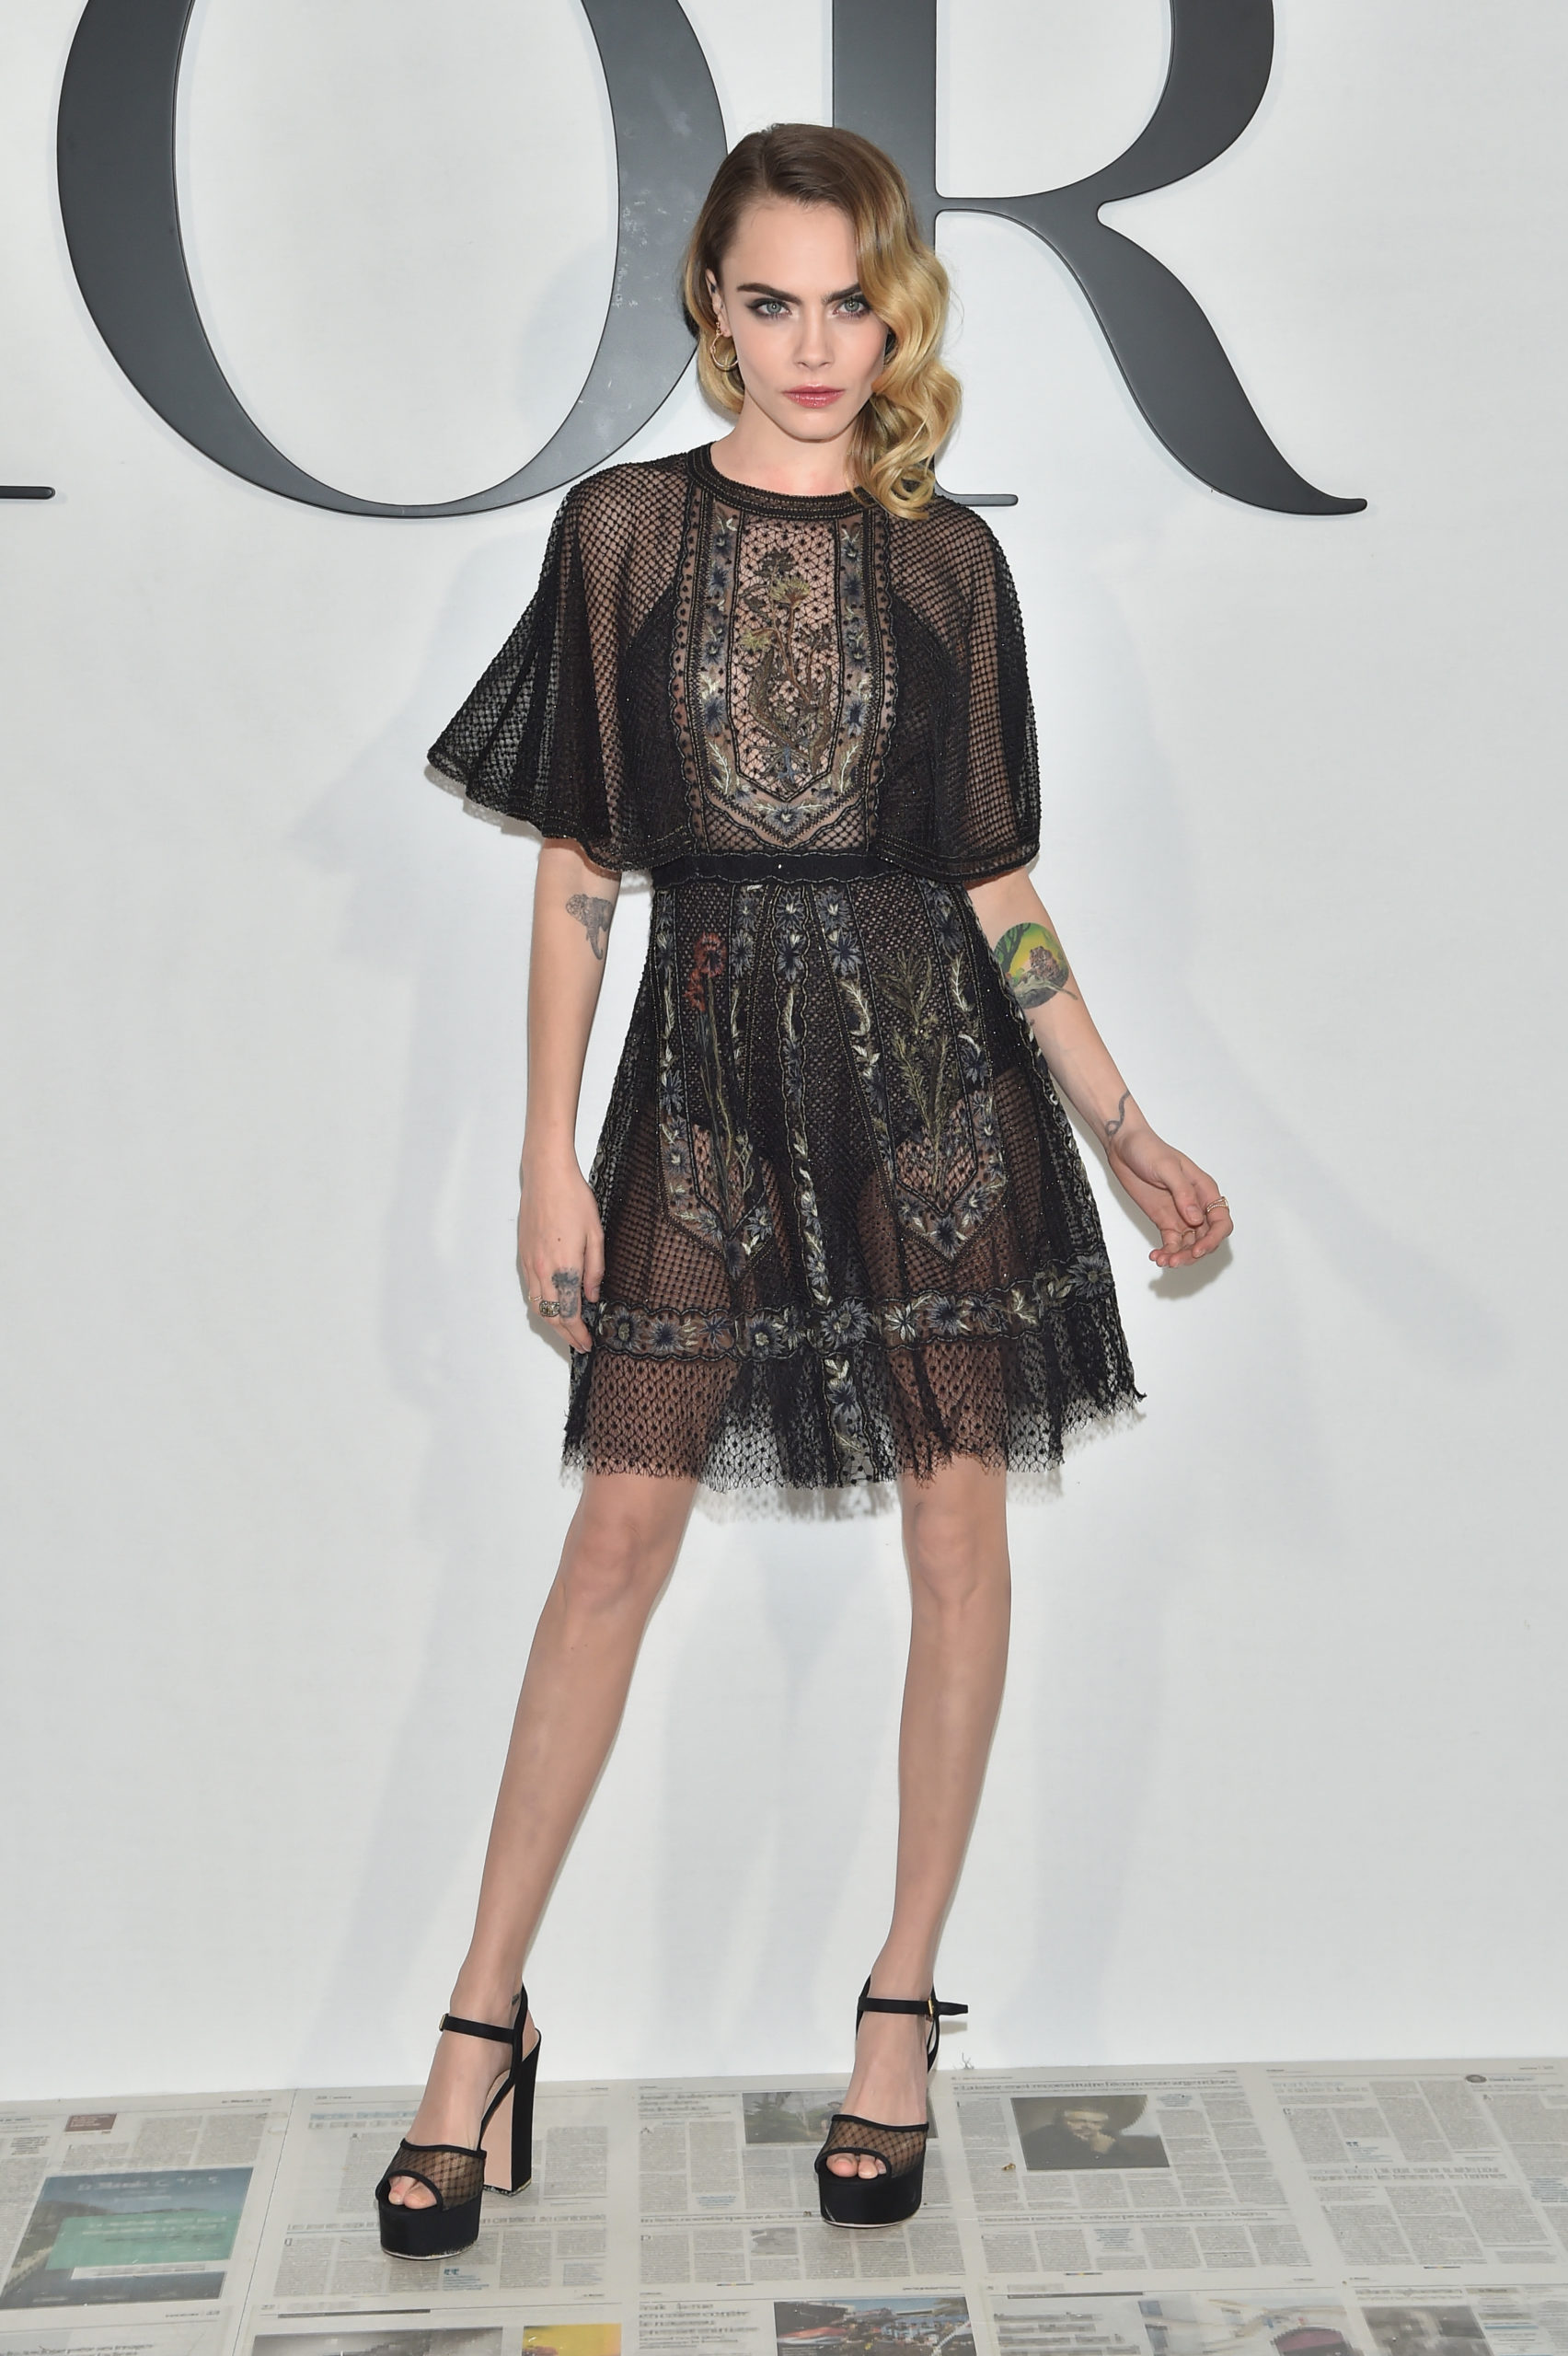 Cara Delevigne indossa un cocktail dress dior